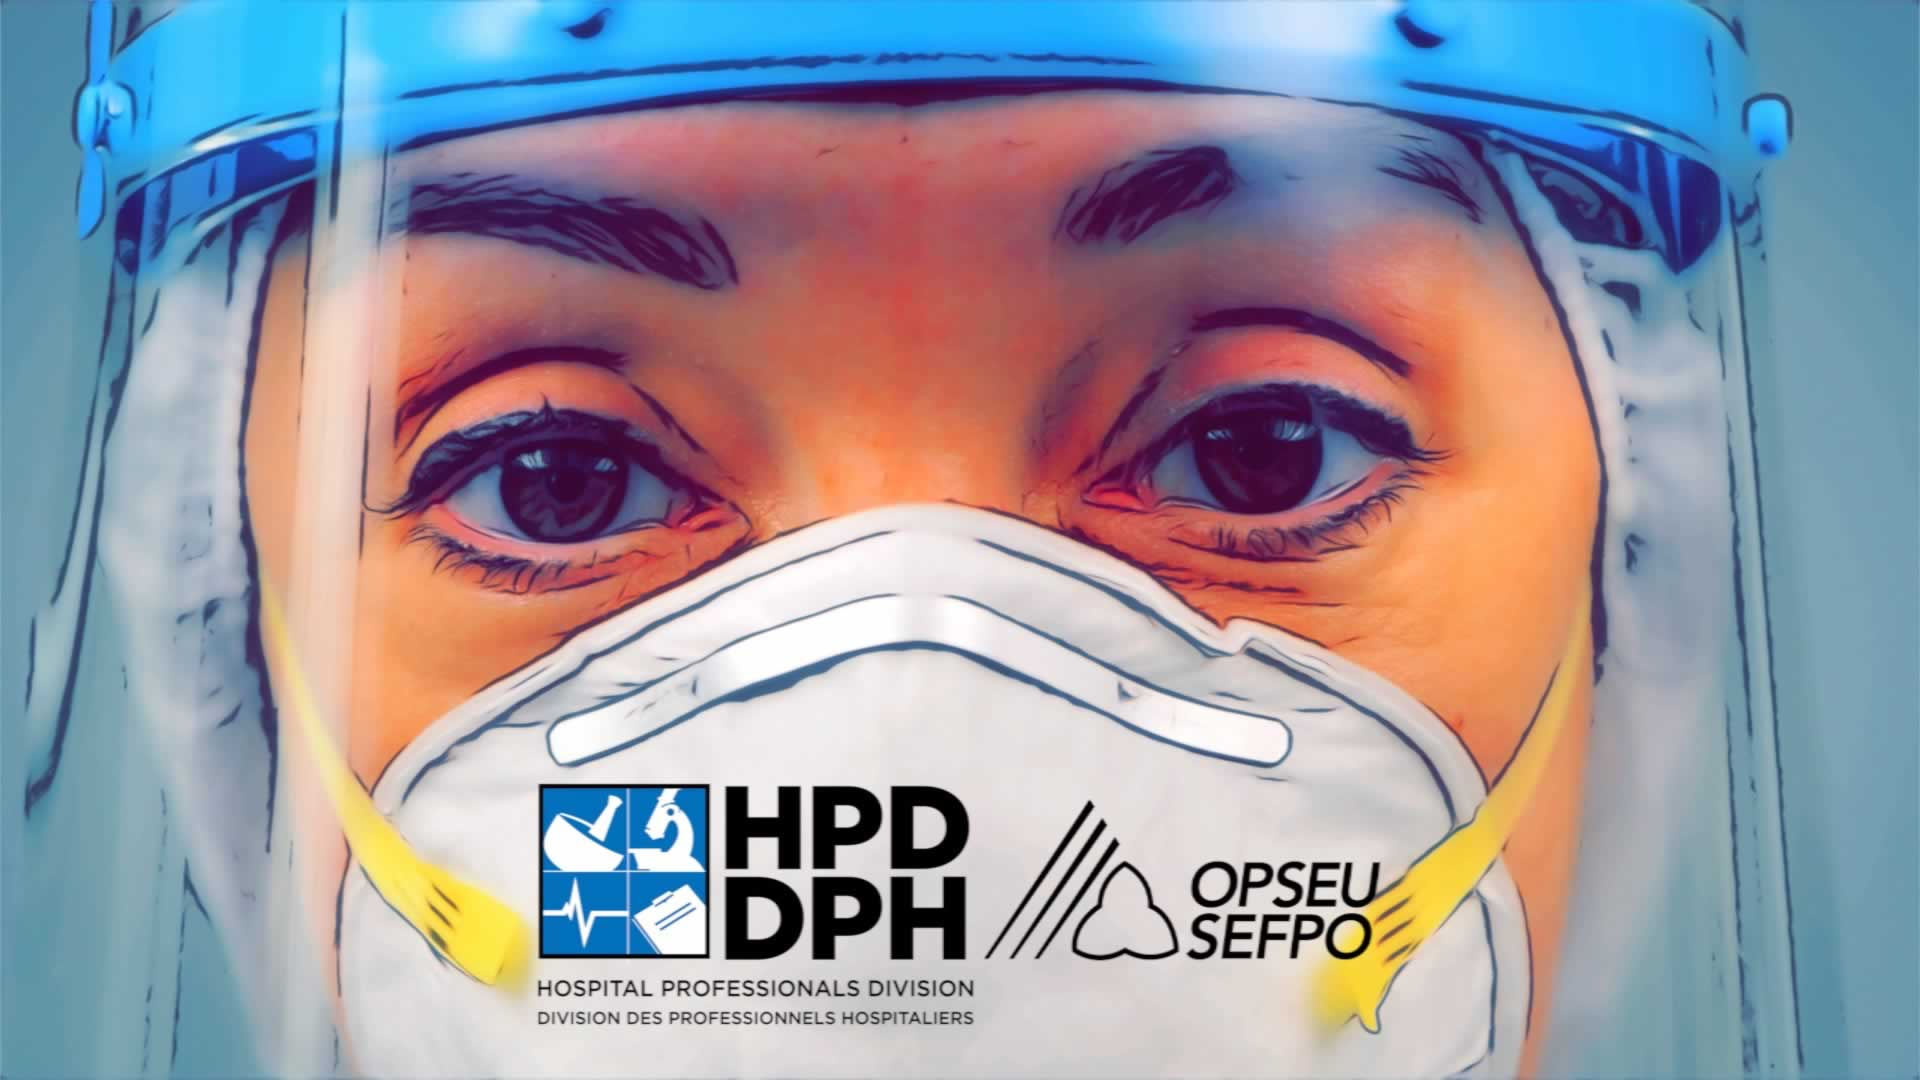 OPSEU/SEFPO Hospital Professionals: Protecting Ontarians every day